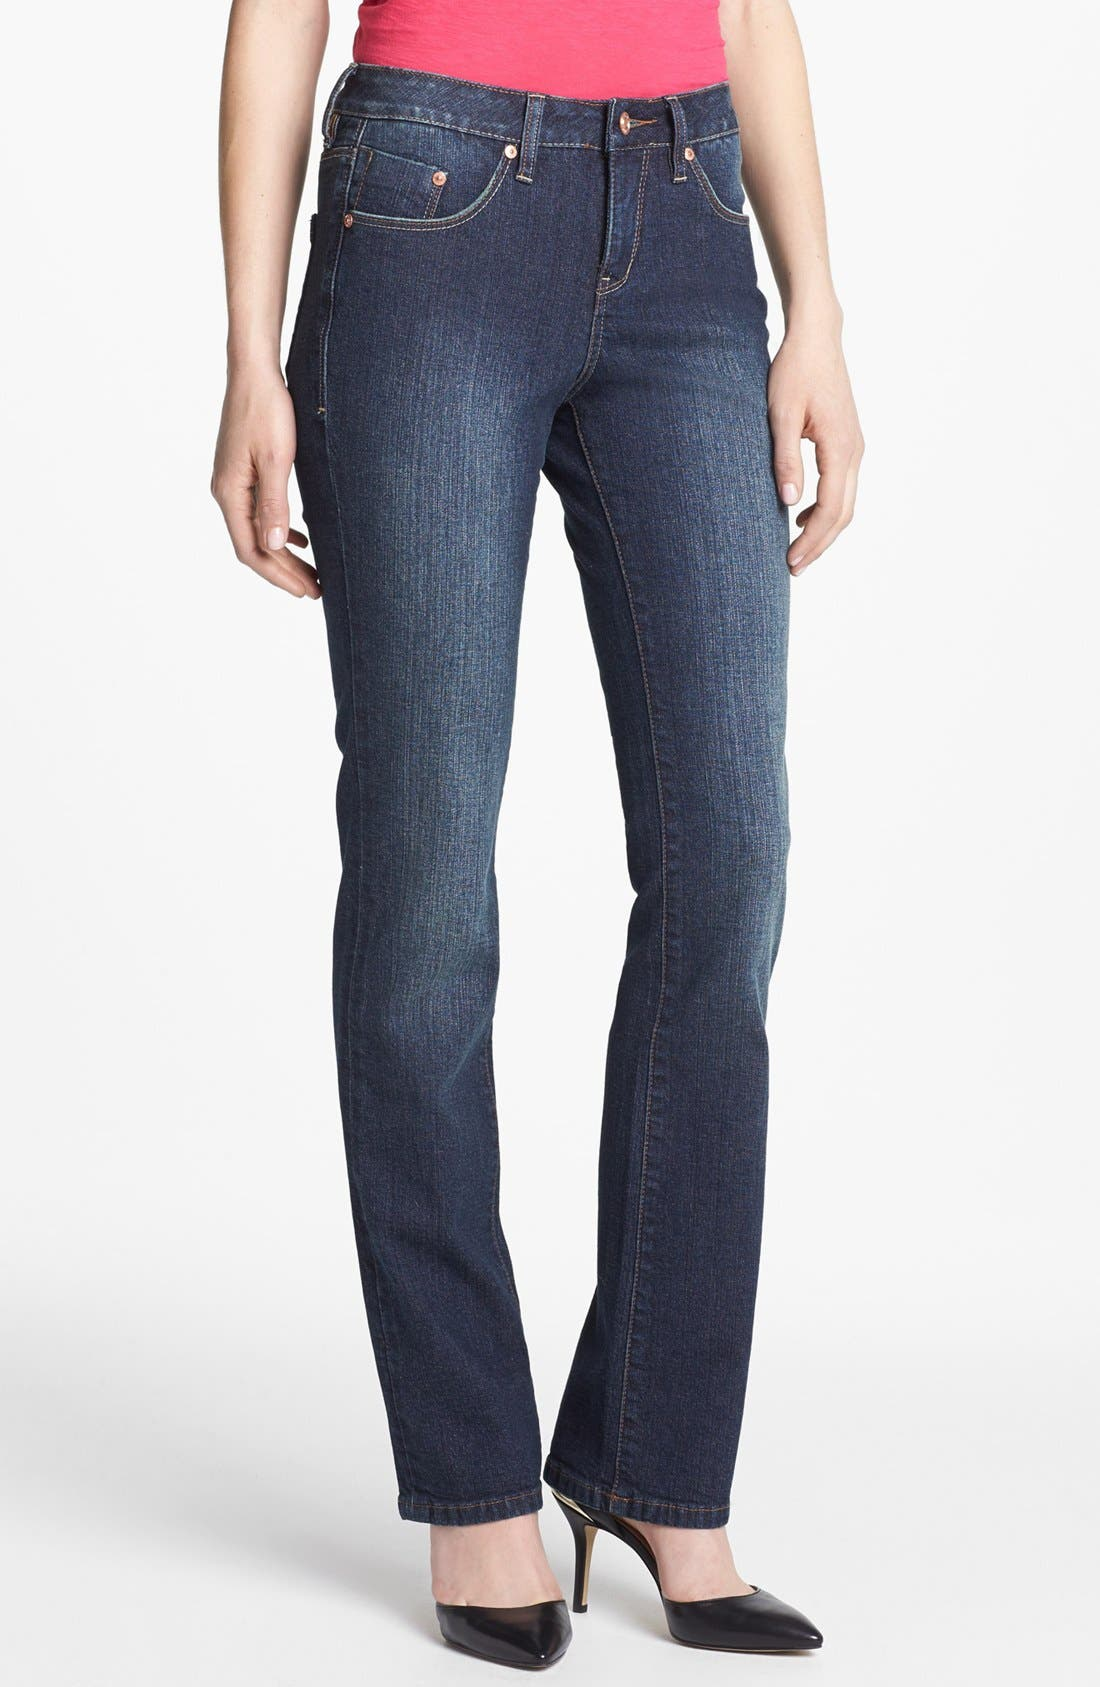 Main Image - Jag Jeans 'Foster' Bootcut Jeans (Blue English) (Petite)